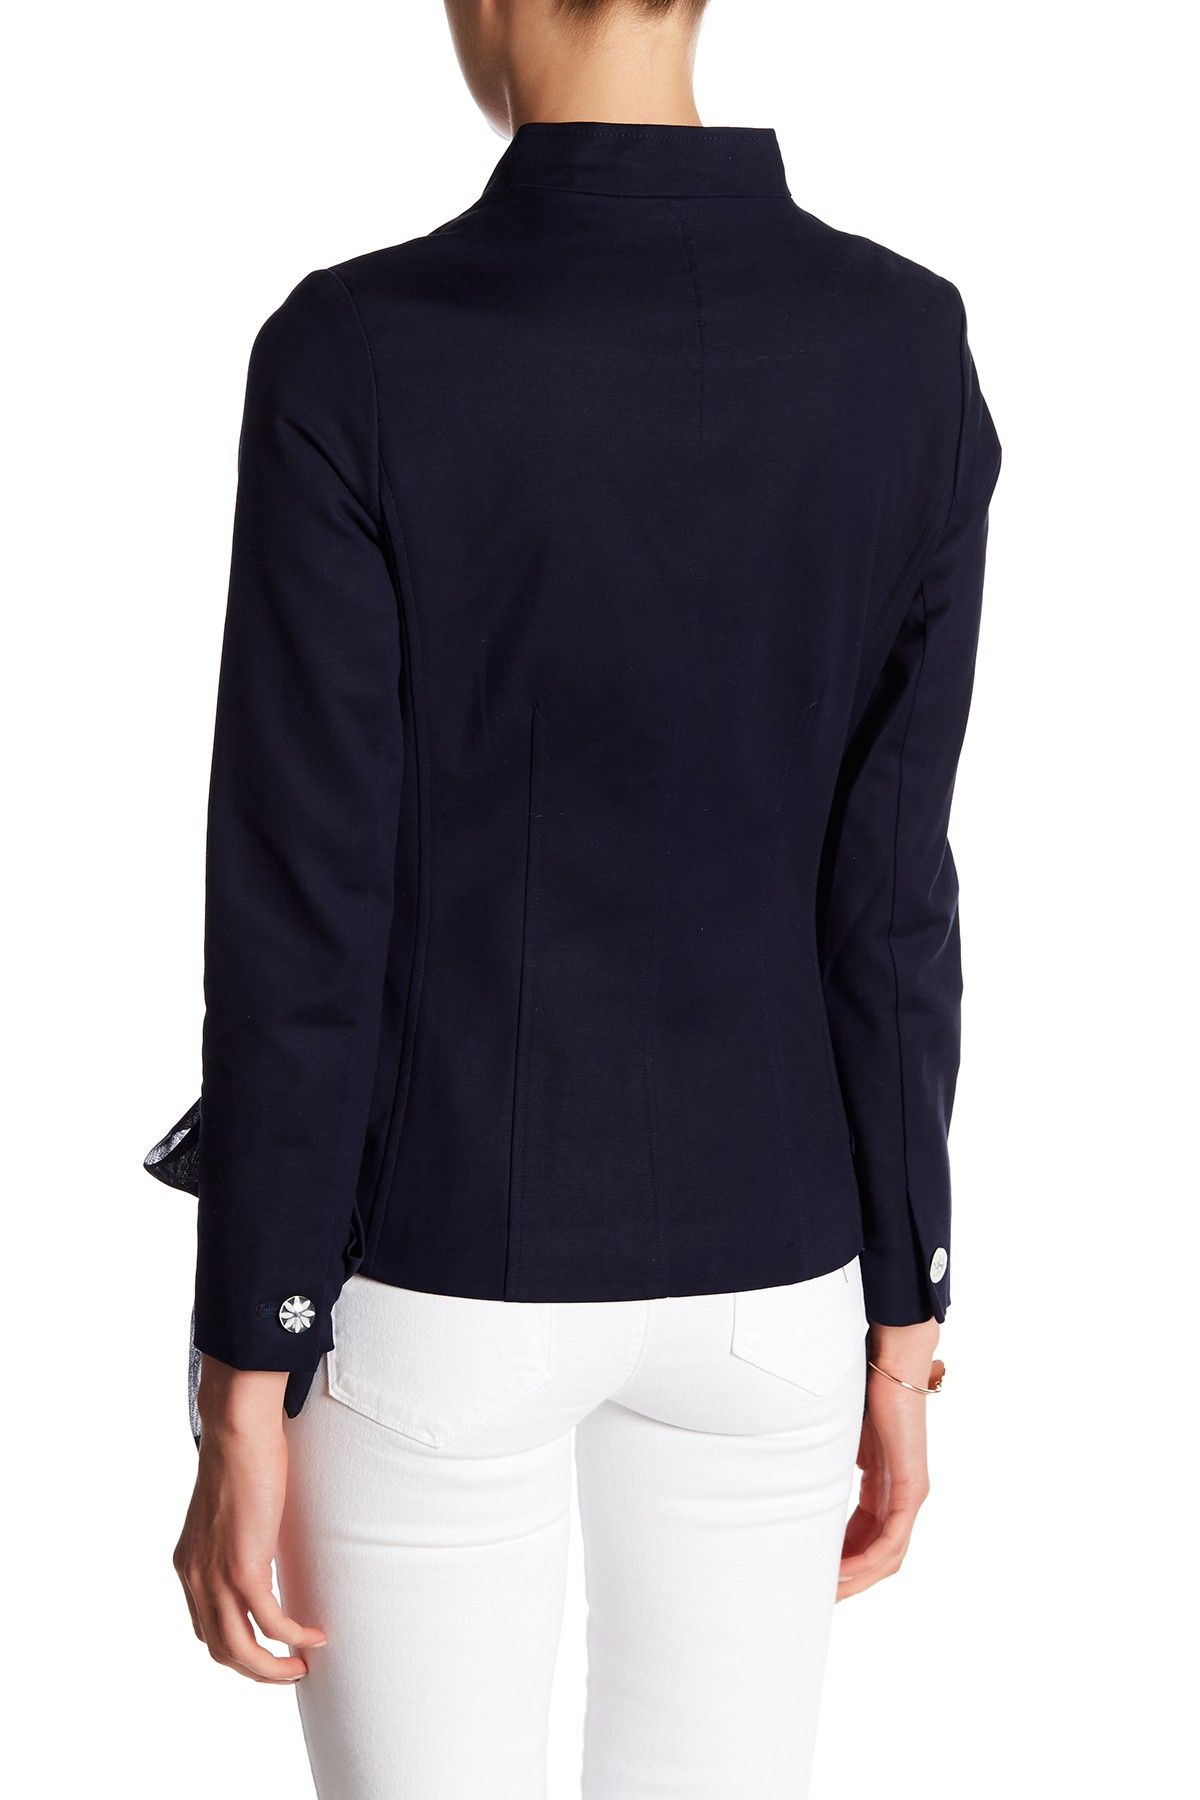 lepore Long Sleeve Blazer with LaceUp